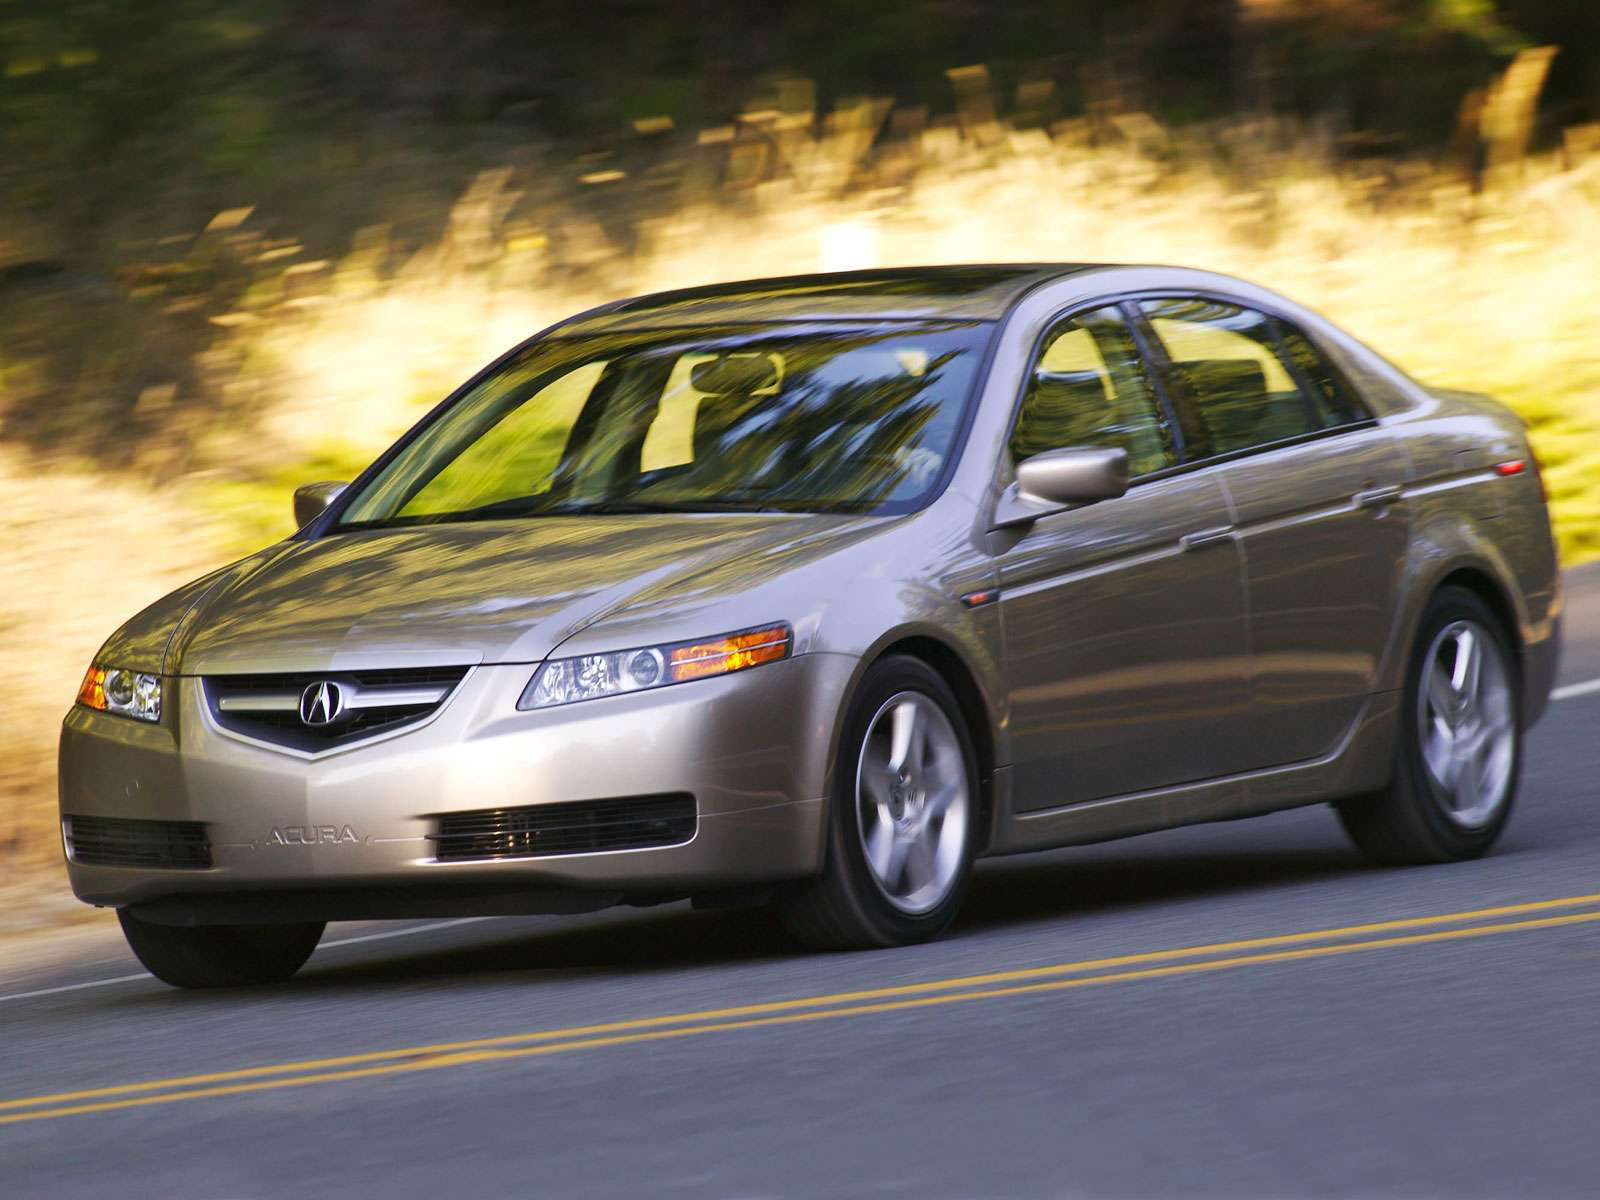 acura en for diego on san copart left lot in green auctions online certificate auto ca view tl carfinder salvage sale